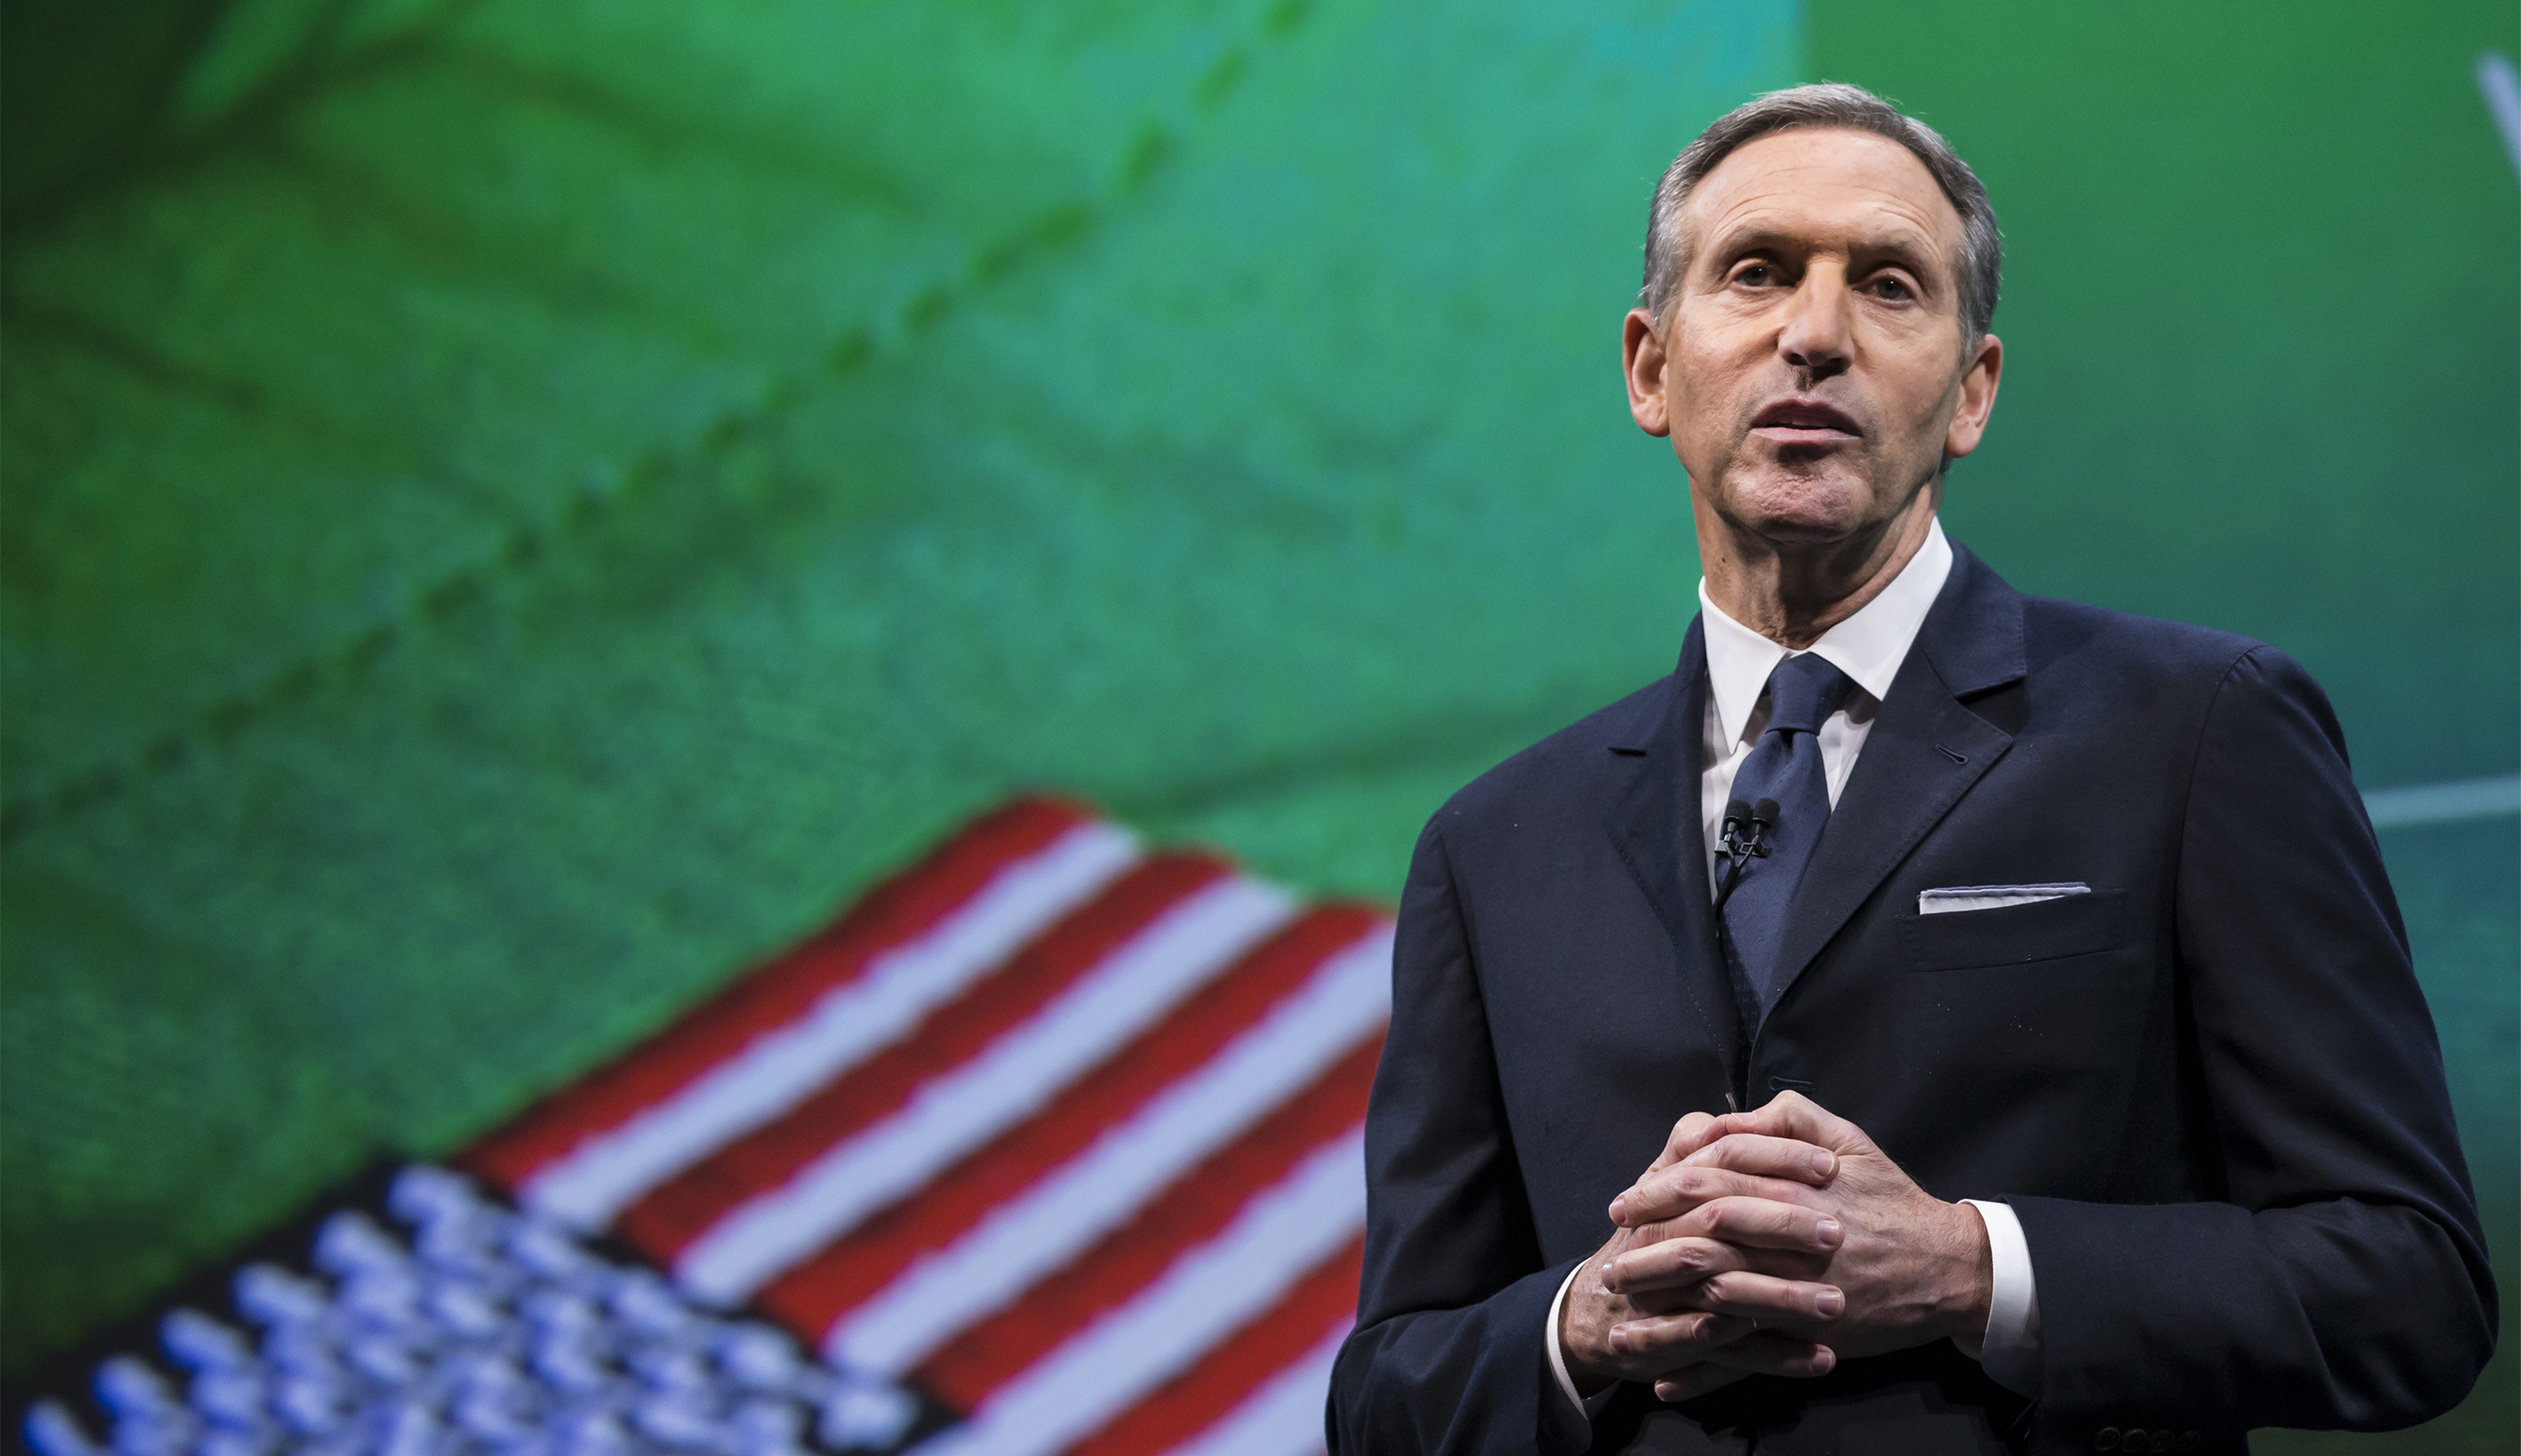 SEATTLE, WA - MARCH 18: Starbucks Chairman and CEO Howard Schultz talks about the company's goal to hire 10,000 military veteran's and military spouses during the Starbucks annual shareholders meeting March 18, 2015 in Seattle, Washington. Schultz also announced a 2-for-1 stock split, the sixth in the company's history, during the meeting. (Stephen Brashear/Getty Images)